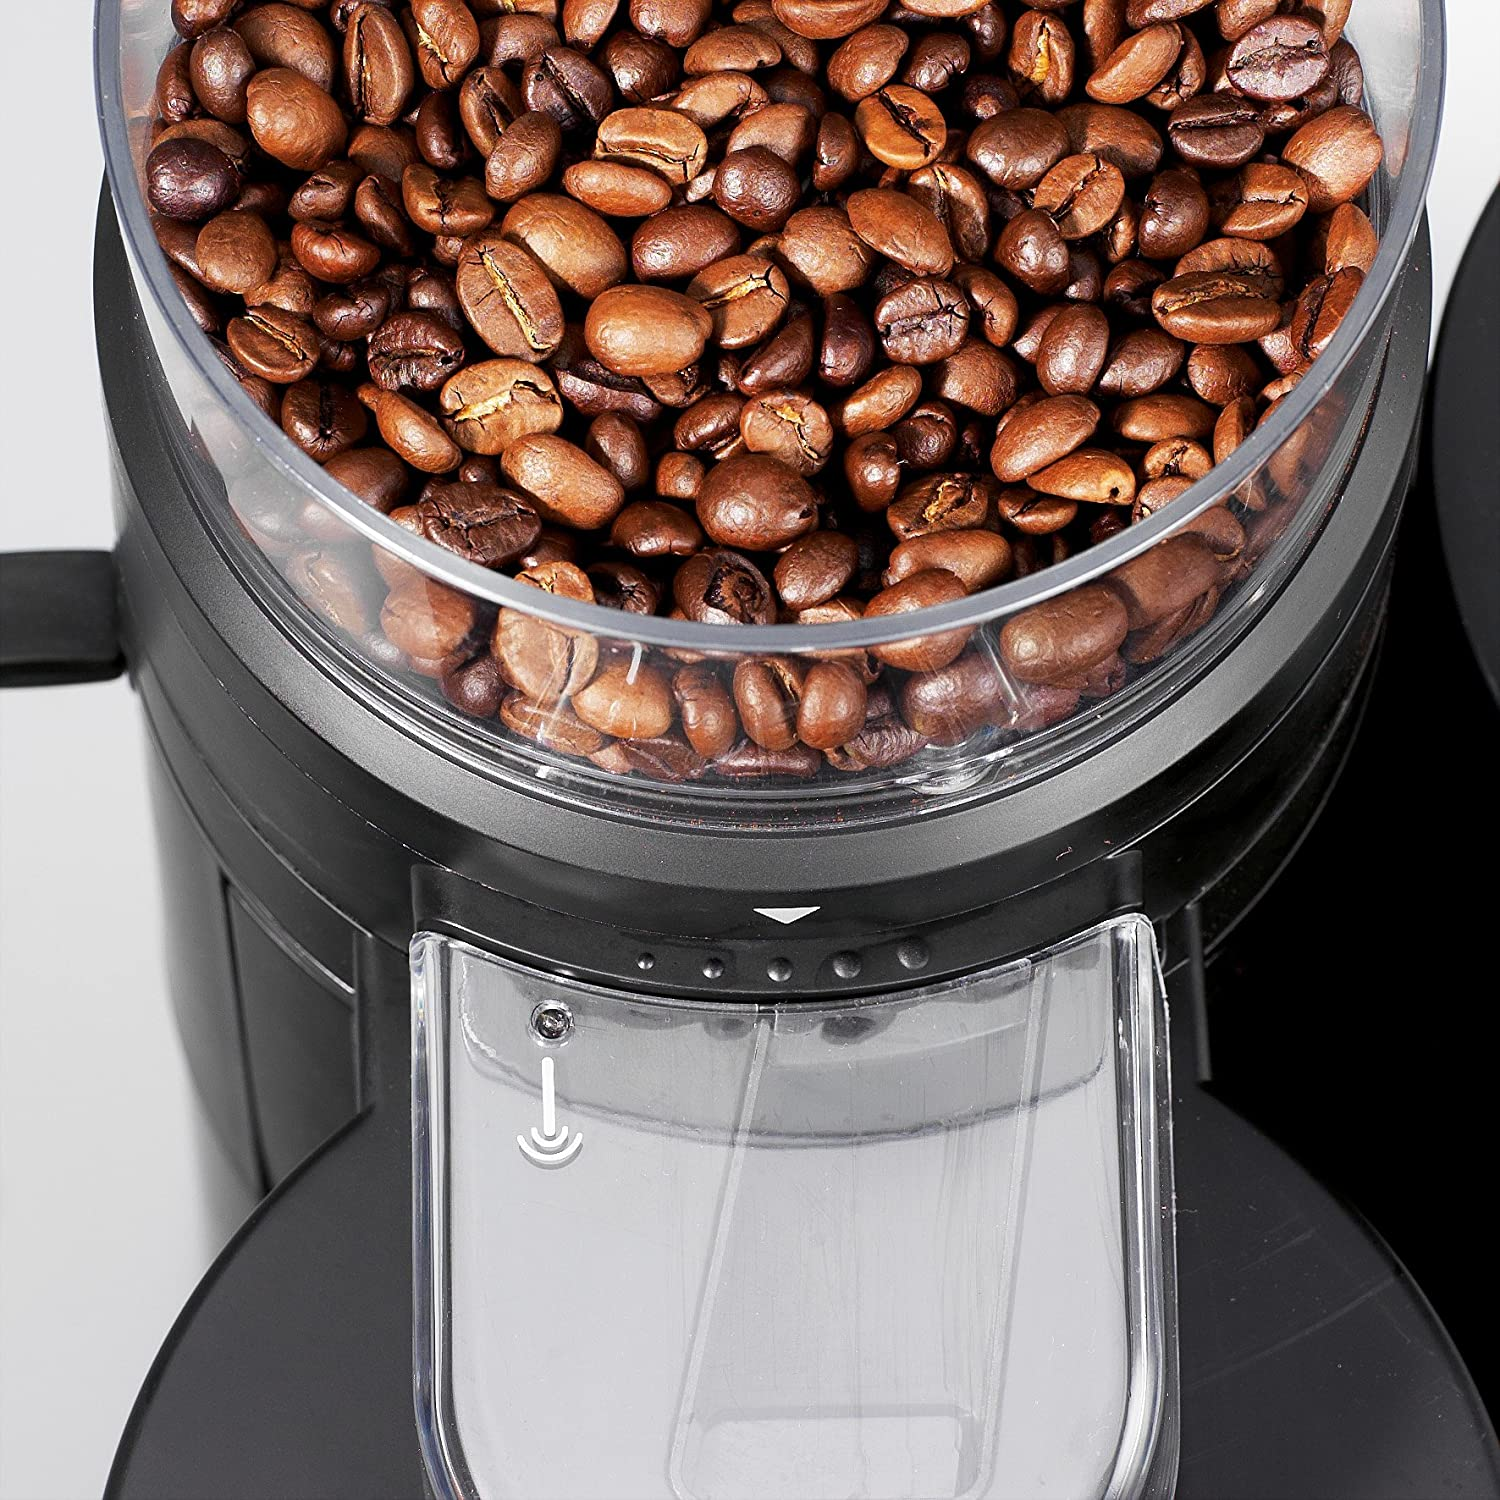 KRUPS KM700552 Grind and Brew Coffee Maker